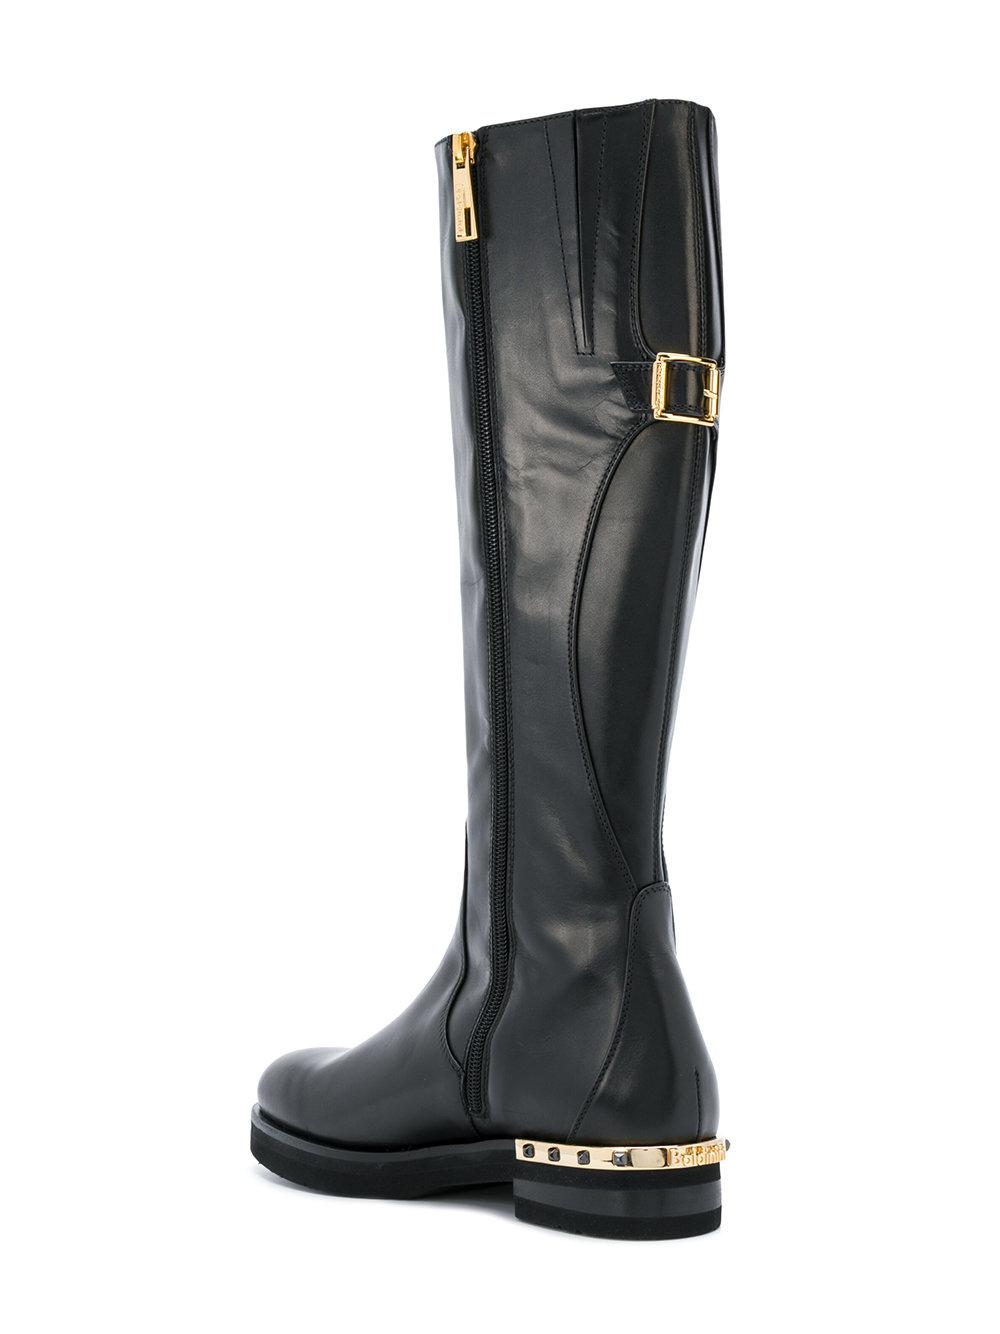 Baldinini Leather Mid-calf Length Boots in Black